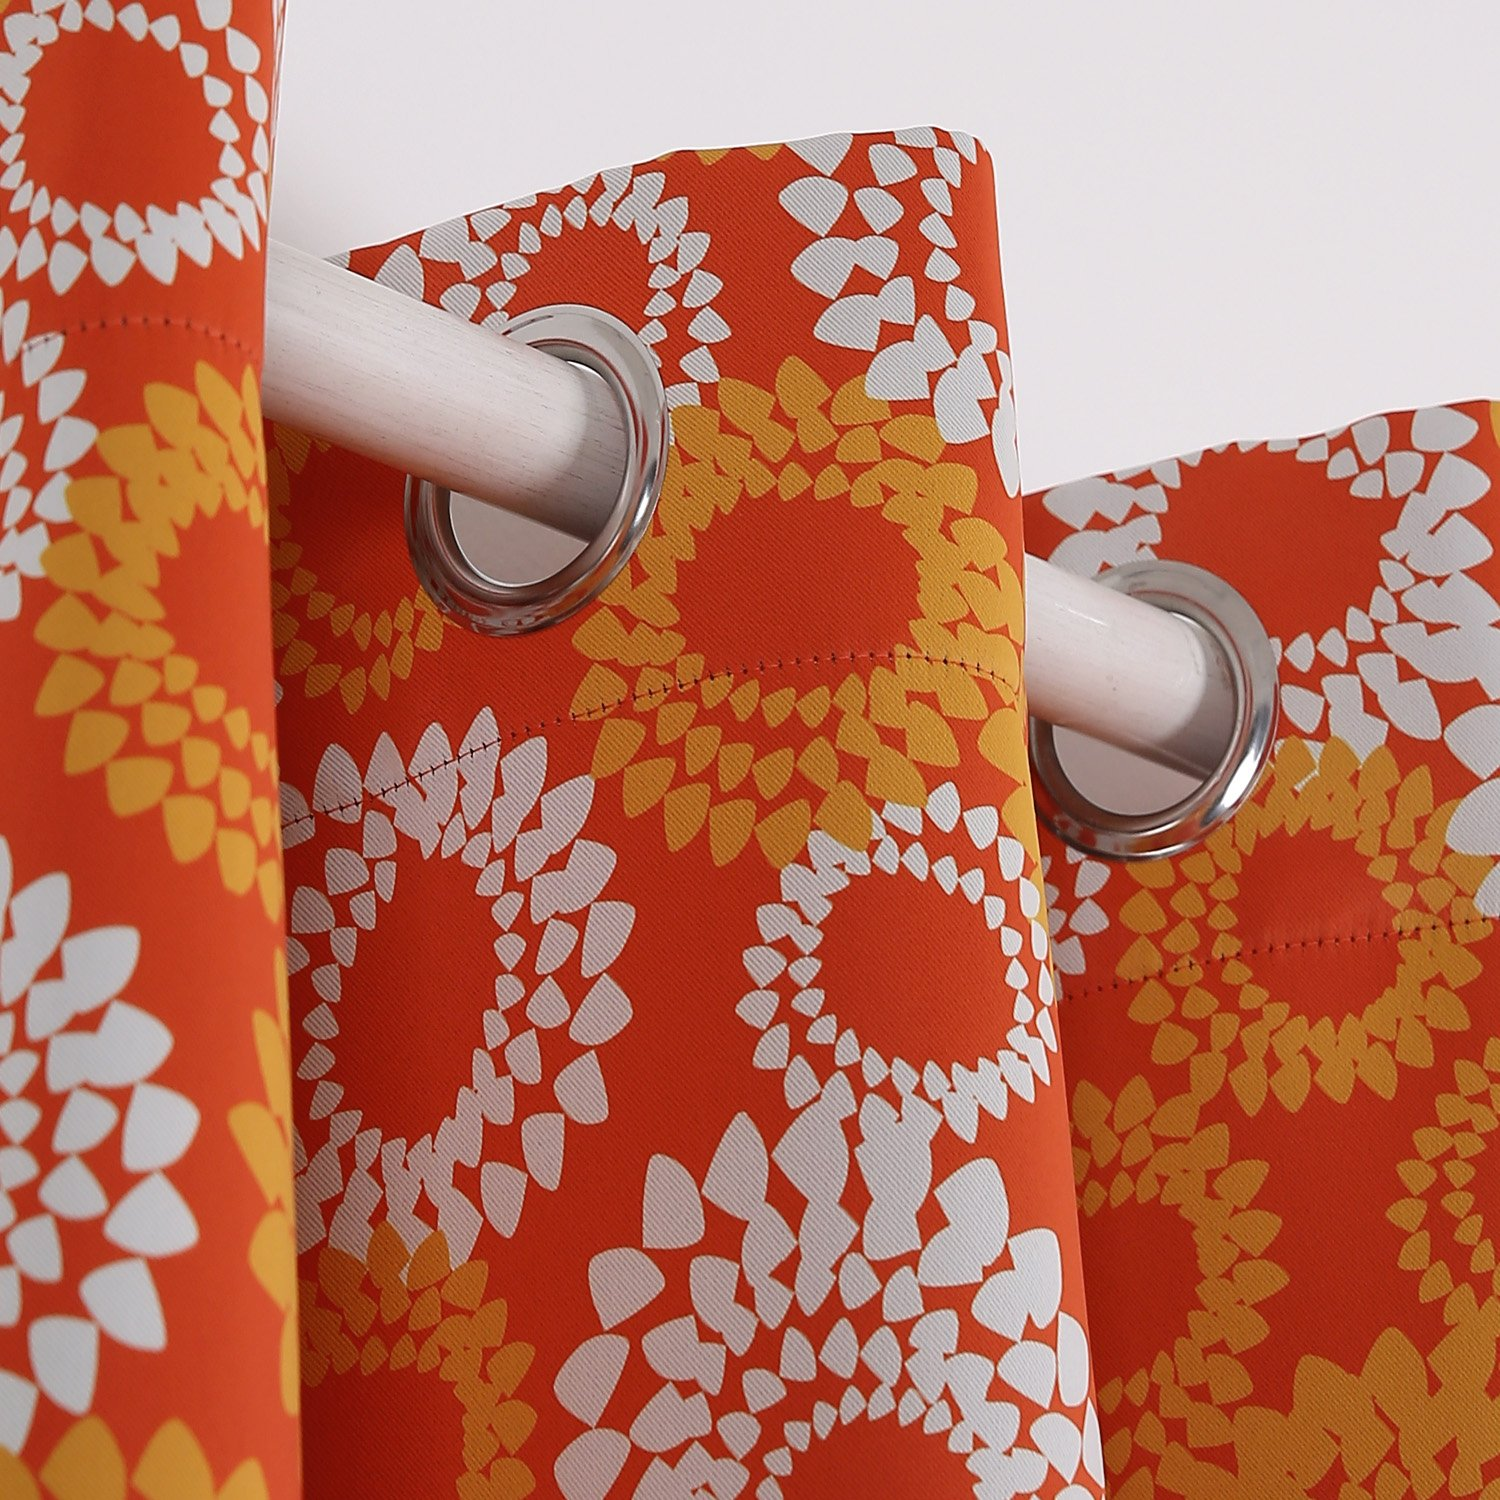 Deconovo Printed Design Blackout Thermal Curtains Floral Pattern Curtains Orange and White